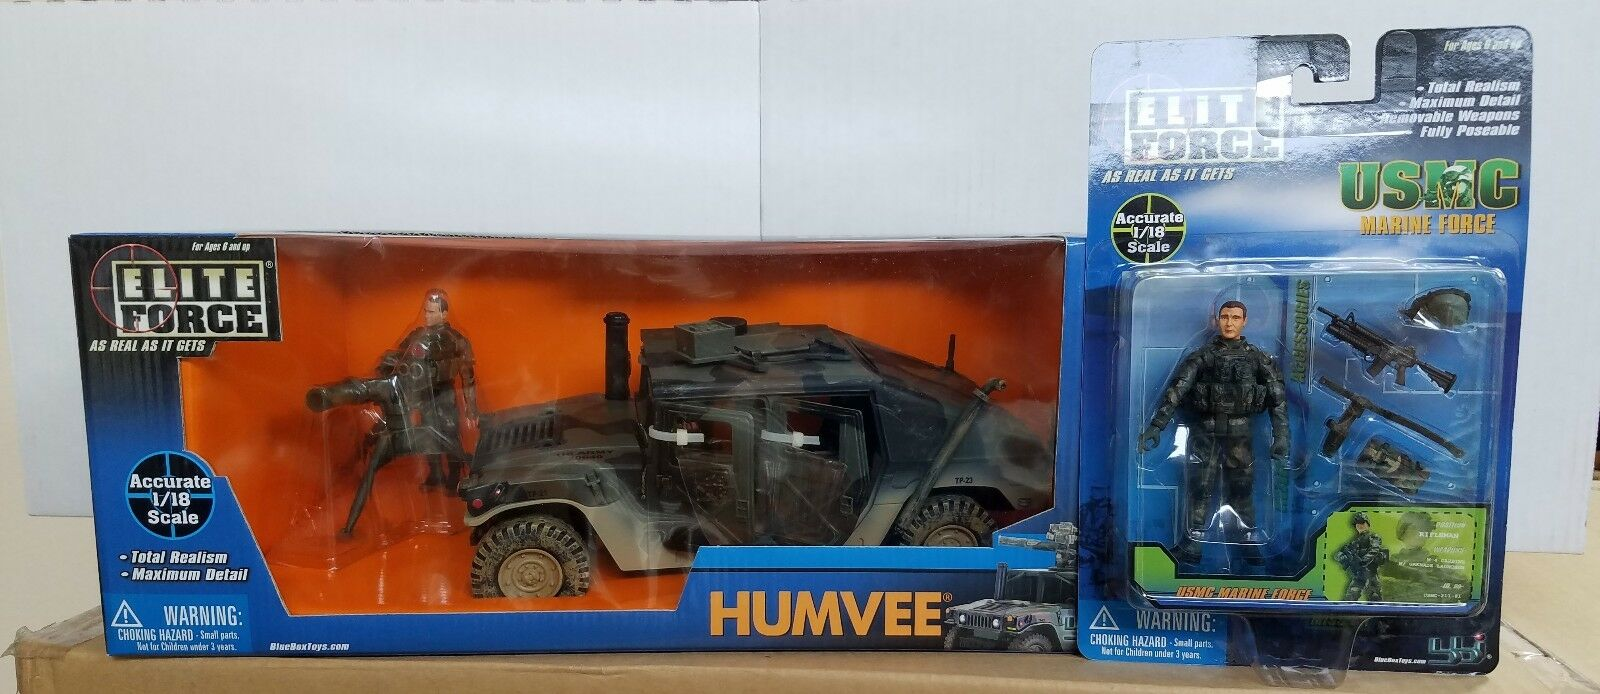 Elite Force Humvee 1 18 Scale With Additional Figure USMC Rifleman 1 18 Scale